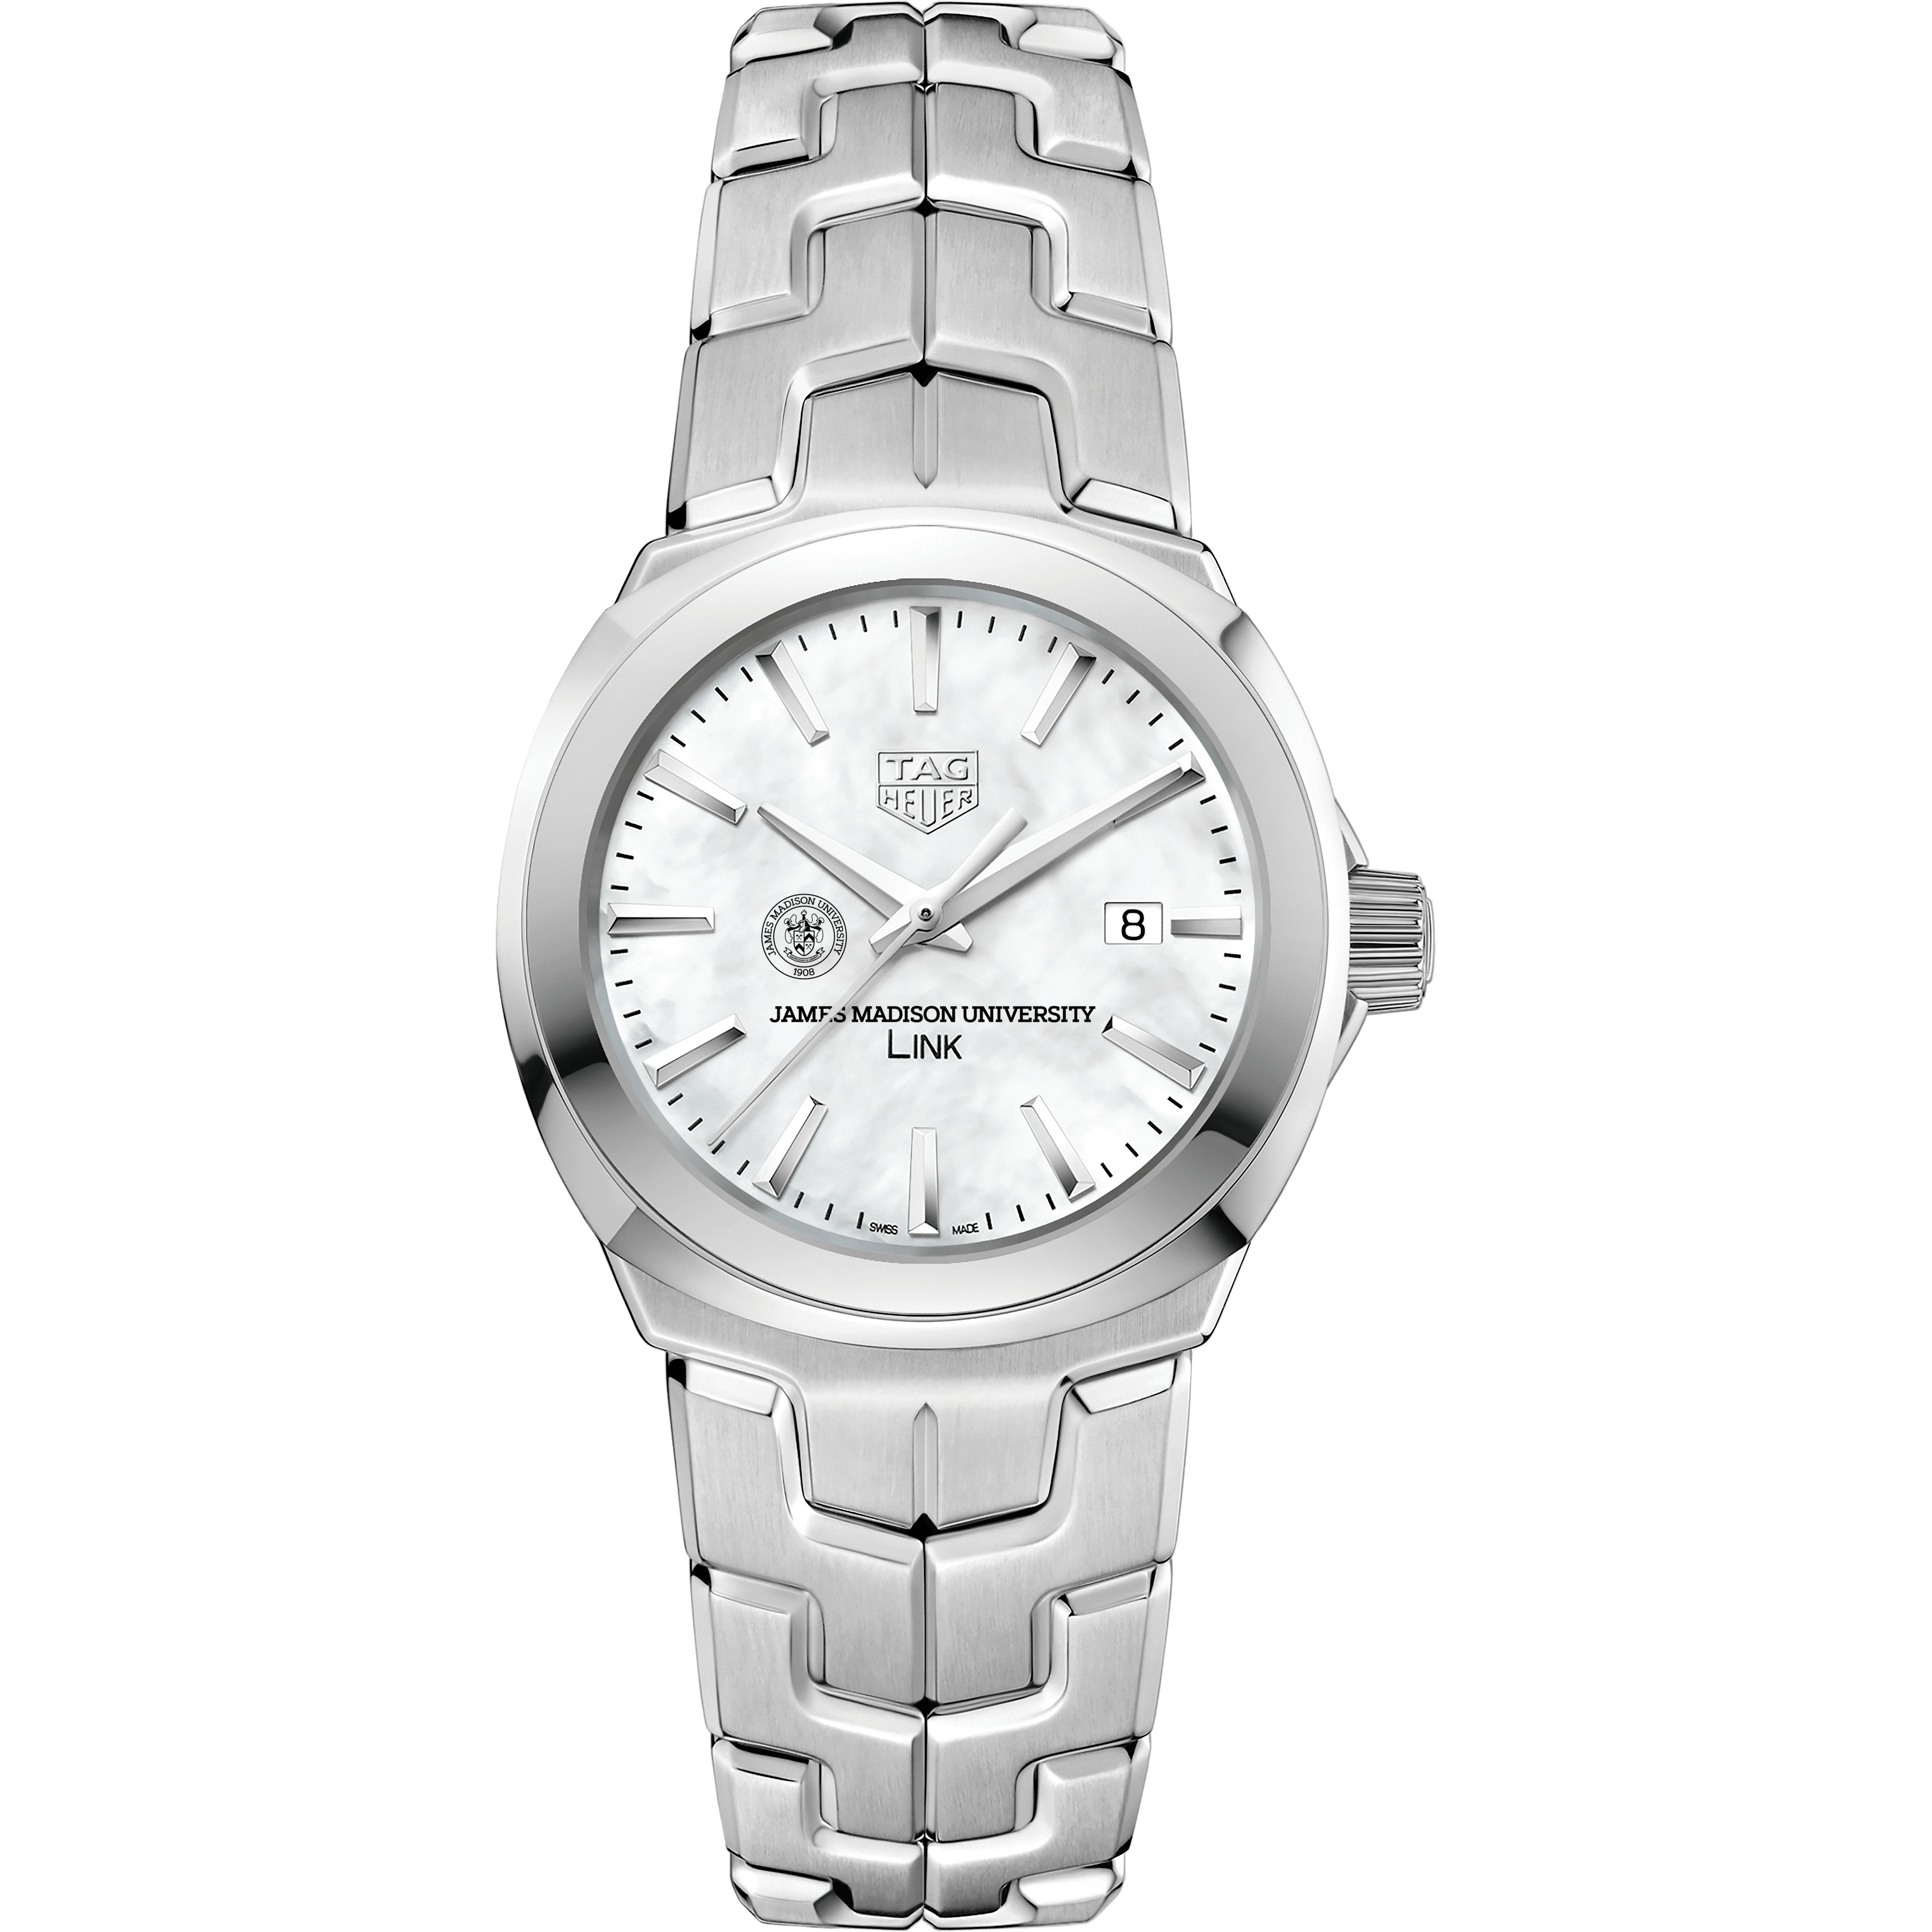 James Madison University TAG Heuer LINK for Women - Image 2